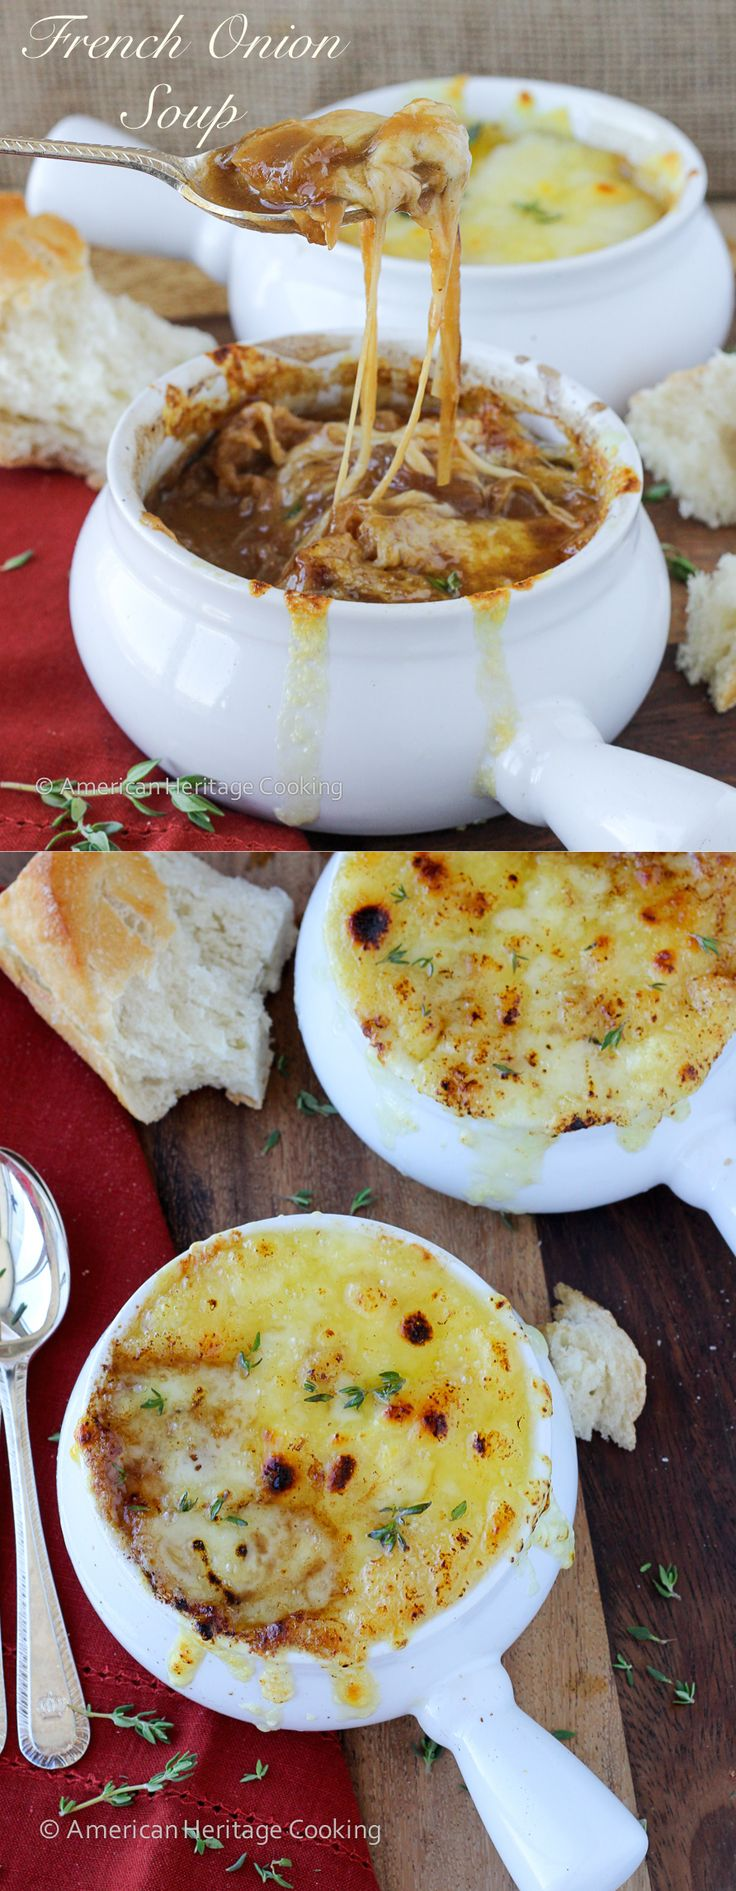 The Best Homemade French Onion Soup –